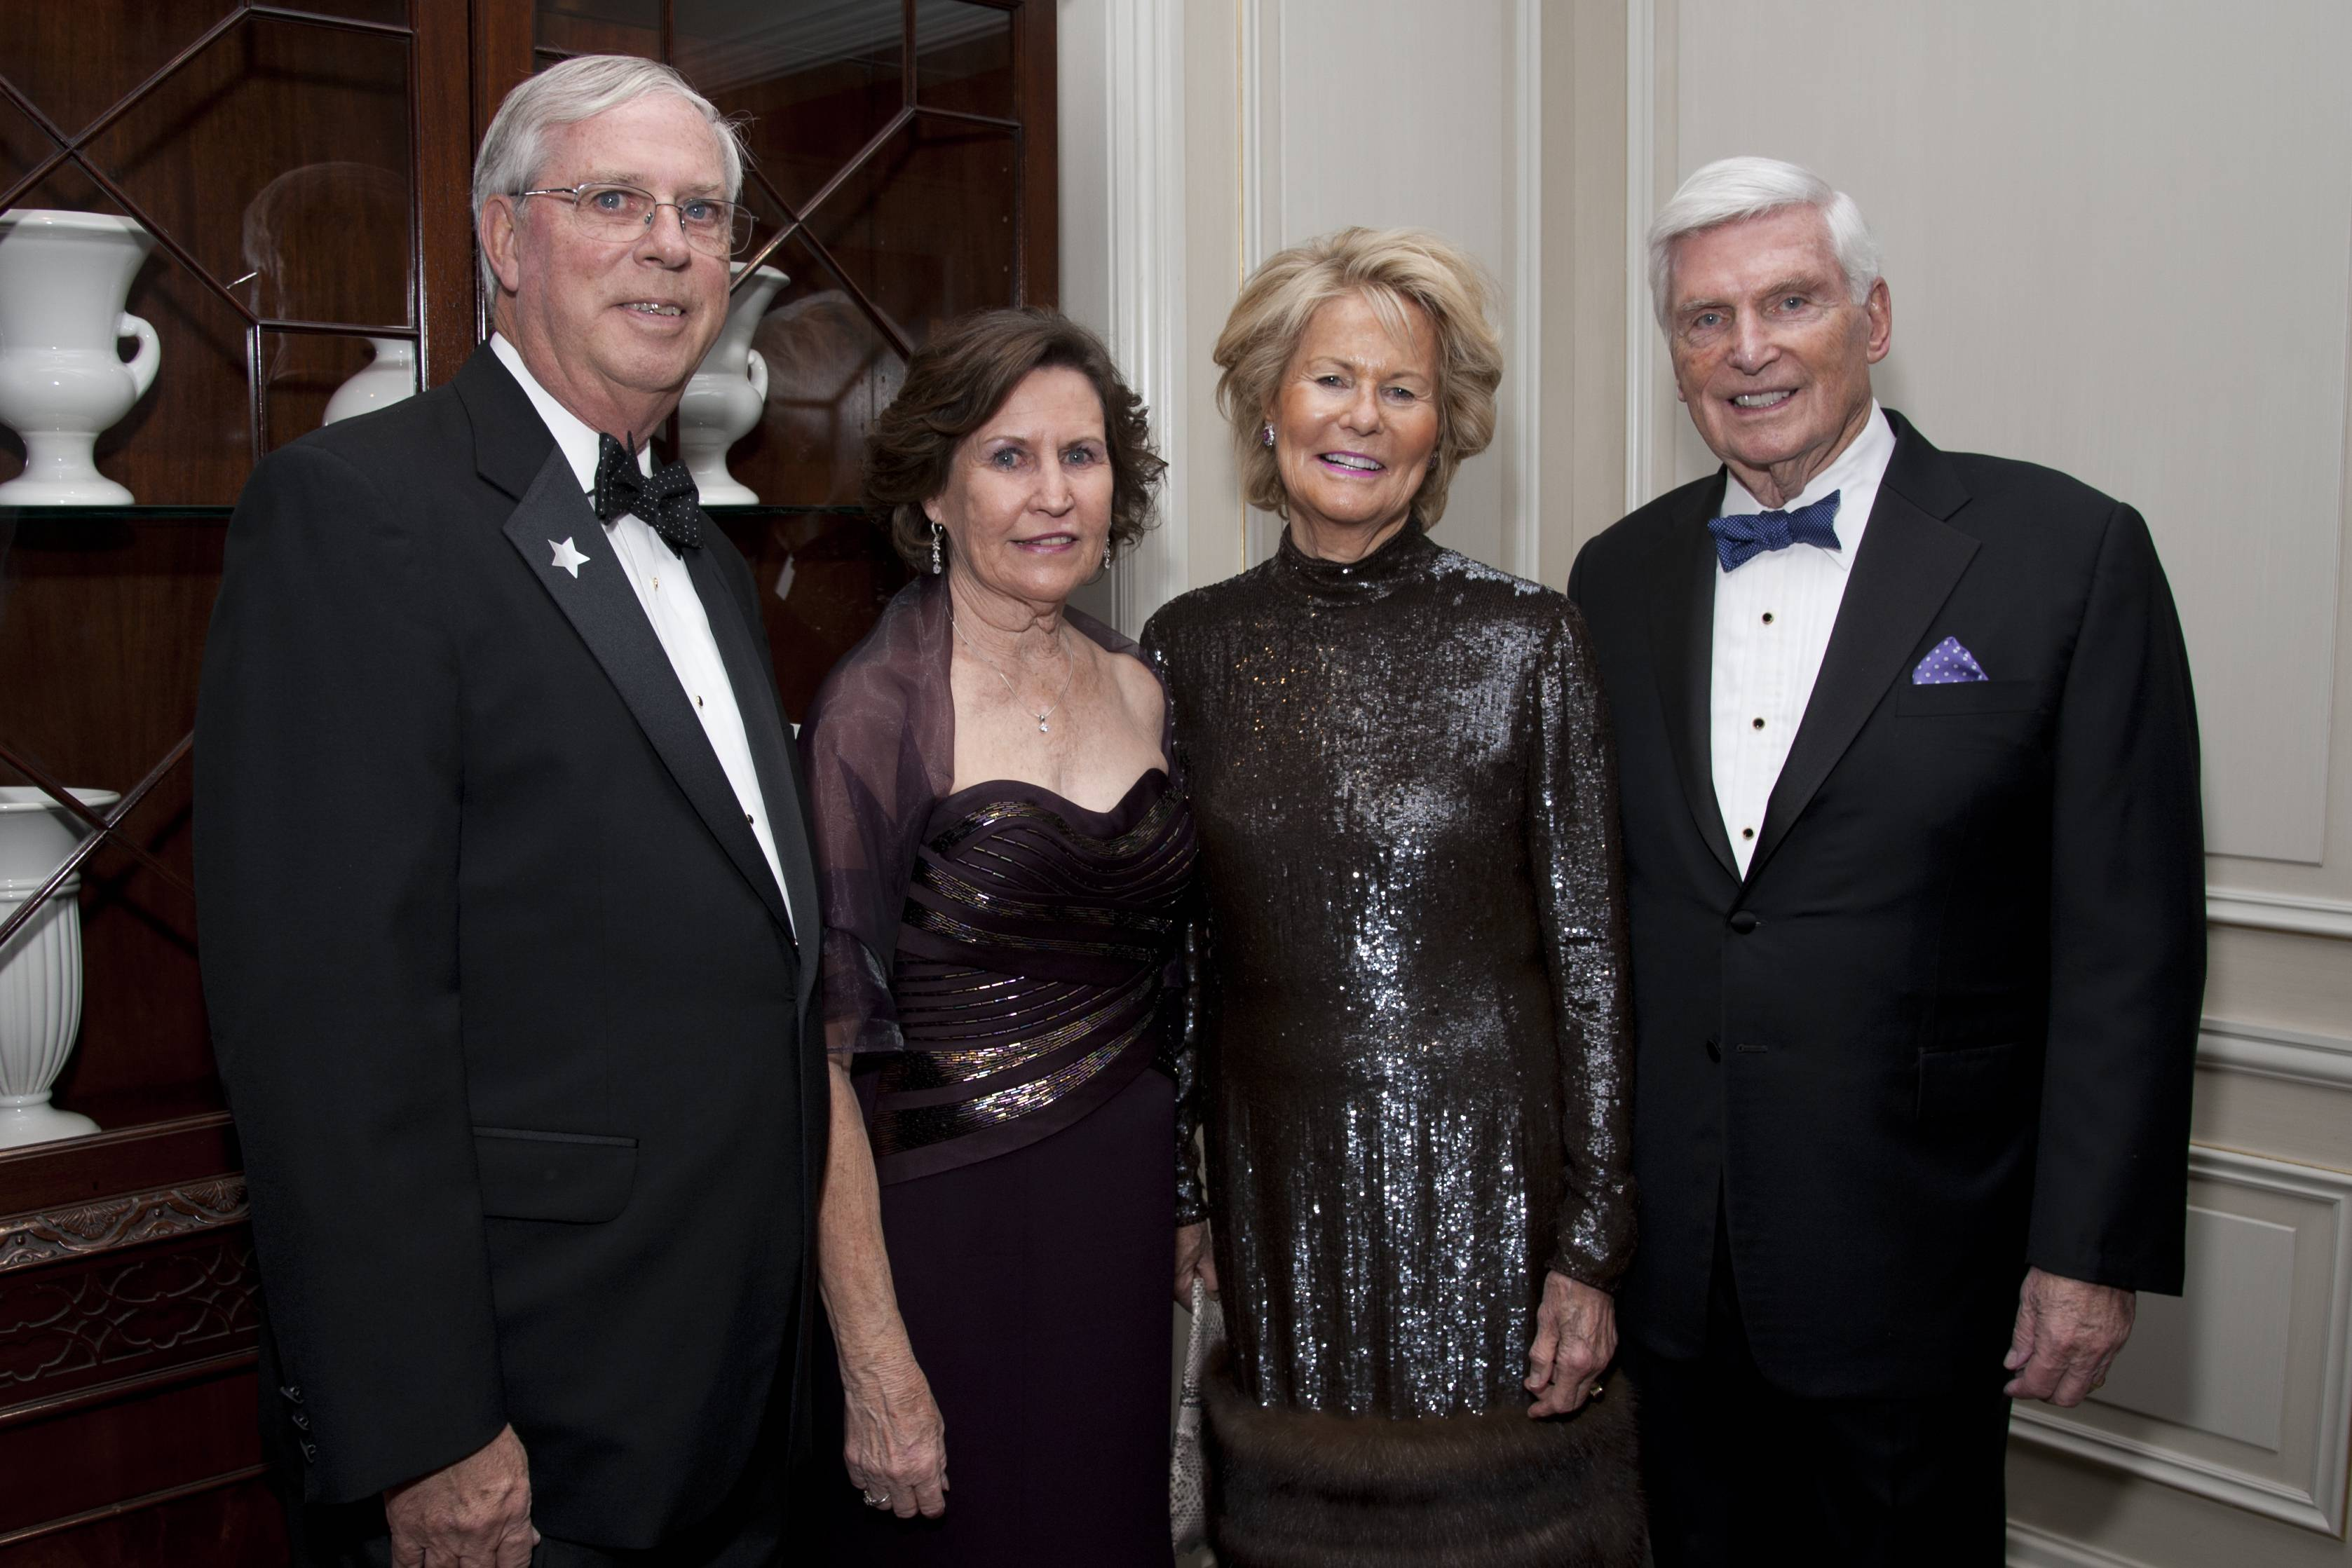 COURTESY OF ROBERT CARLFrom left, Linda and David Riley and Shirley and Pat Ryan pose for a picture during the Clearbrook Event at the Four Seasons Hotel Chicago on Friday, April 27, 2018.